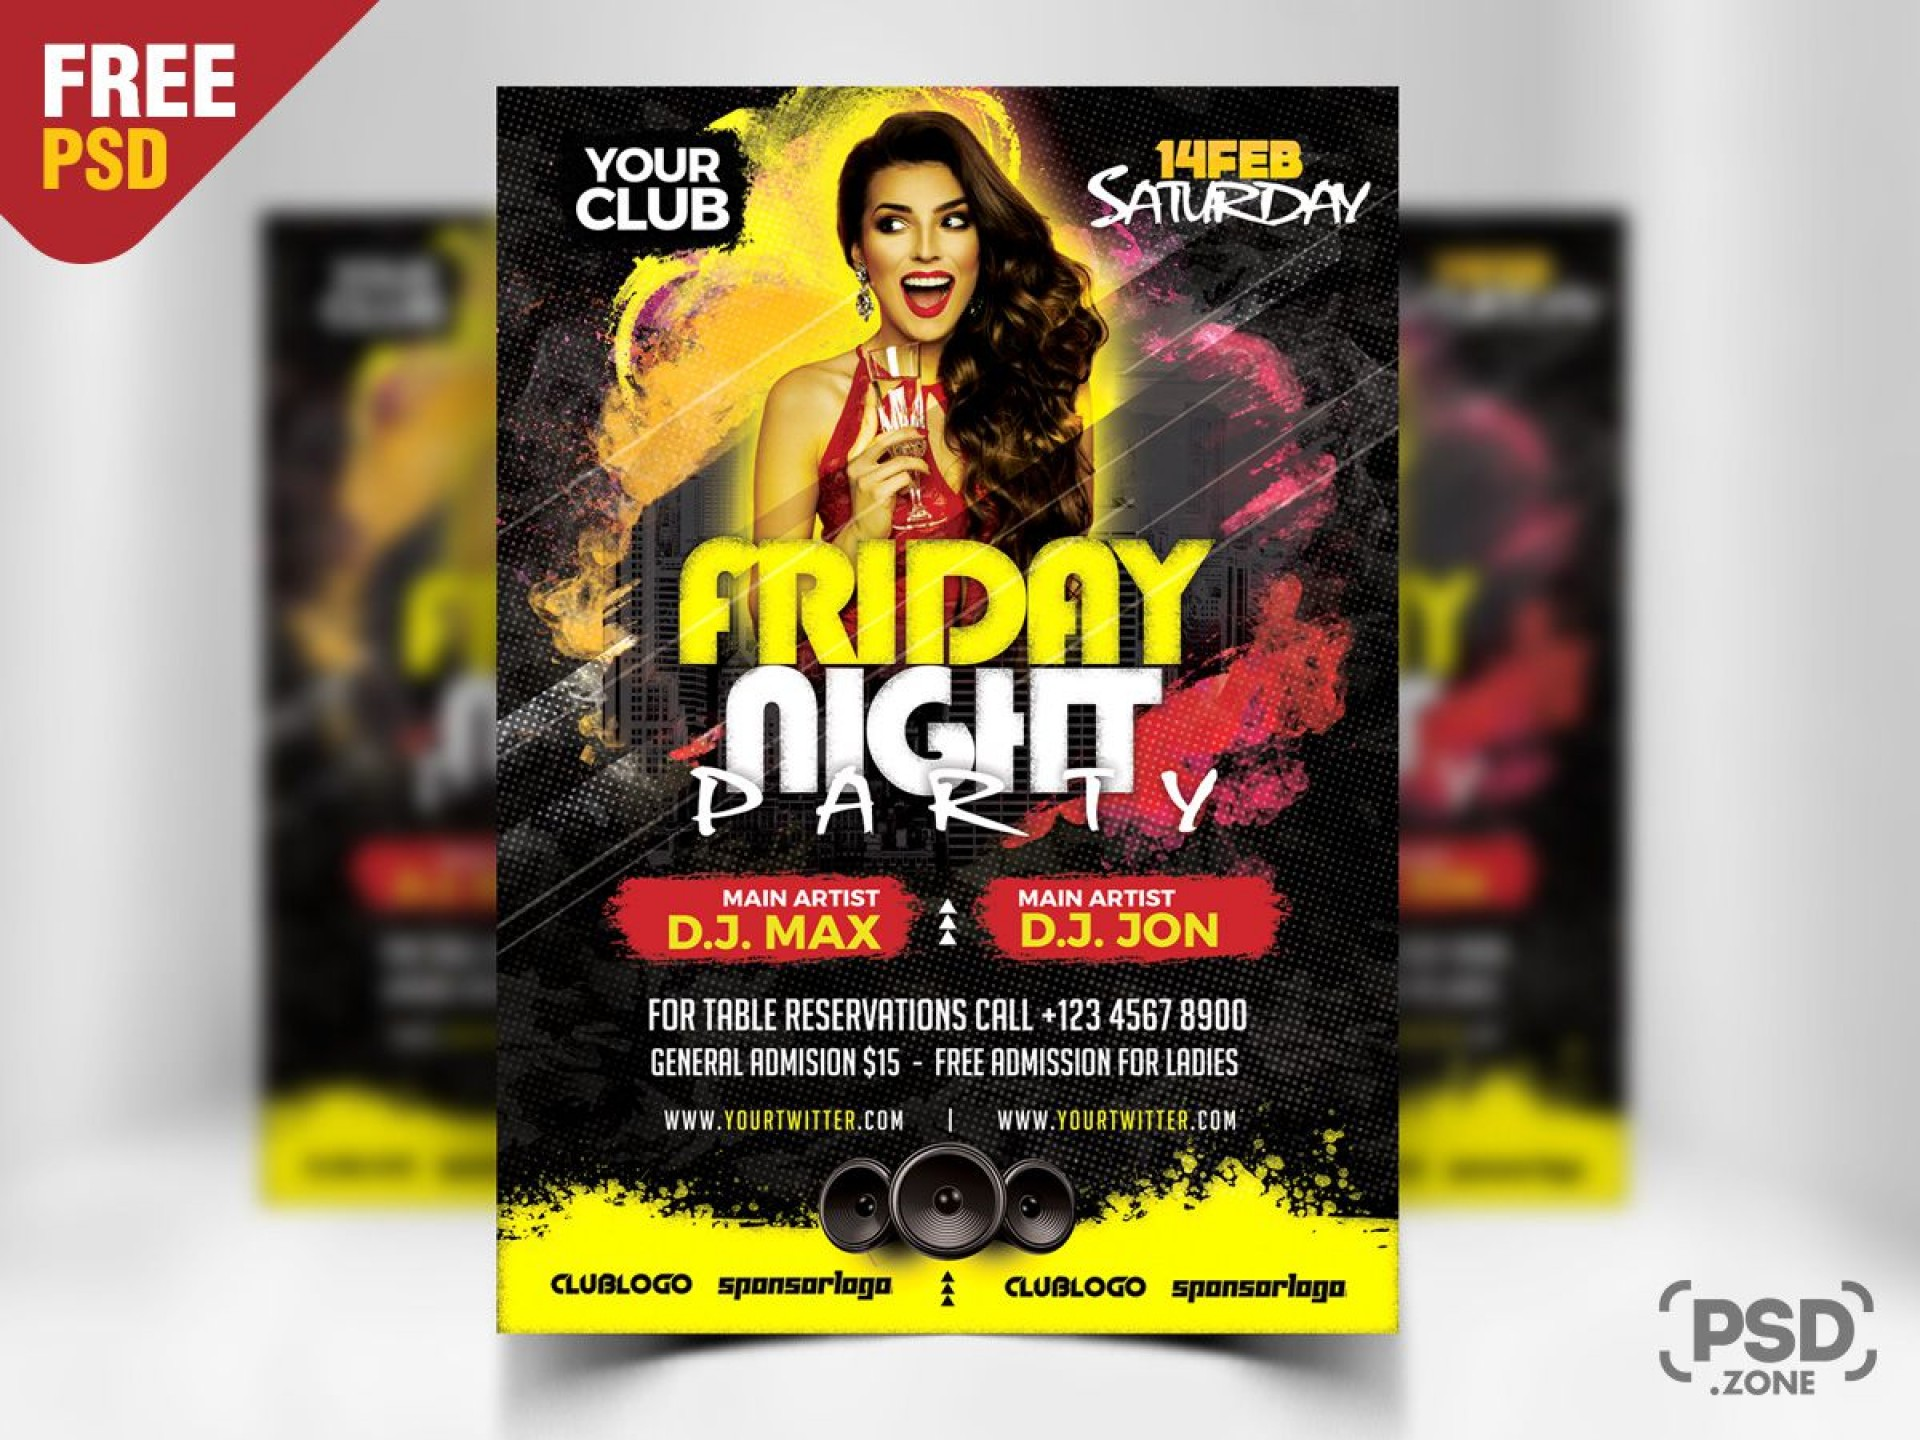 007 Awesome Free Party Flyer Template For Photoshop Inspiration  Pool Psd Download1920